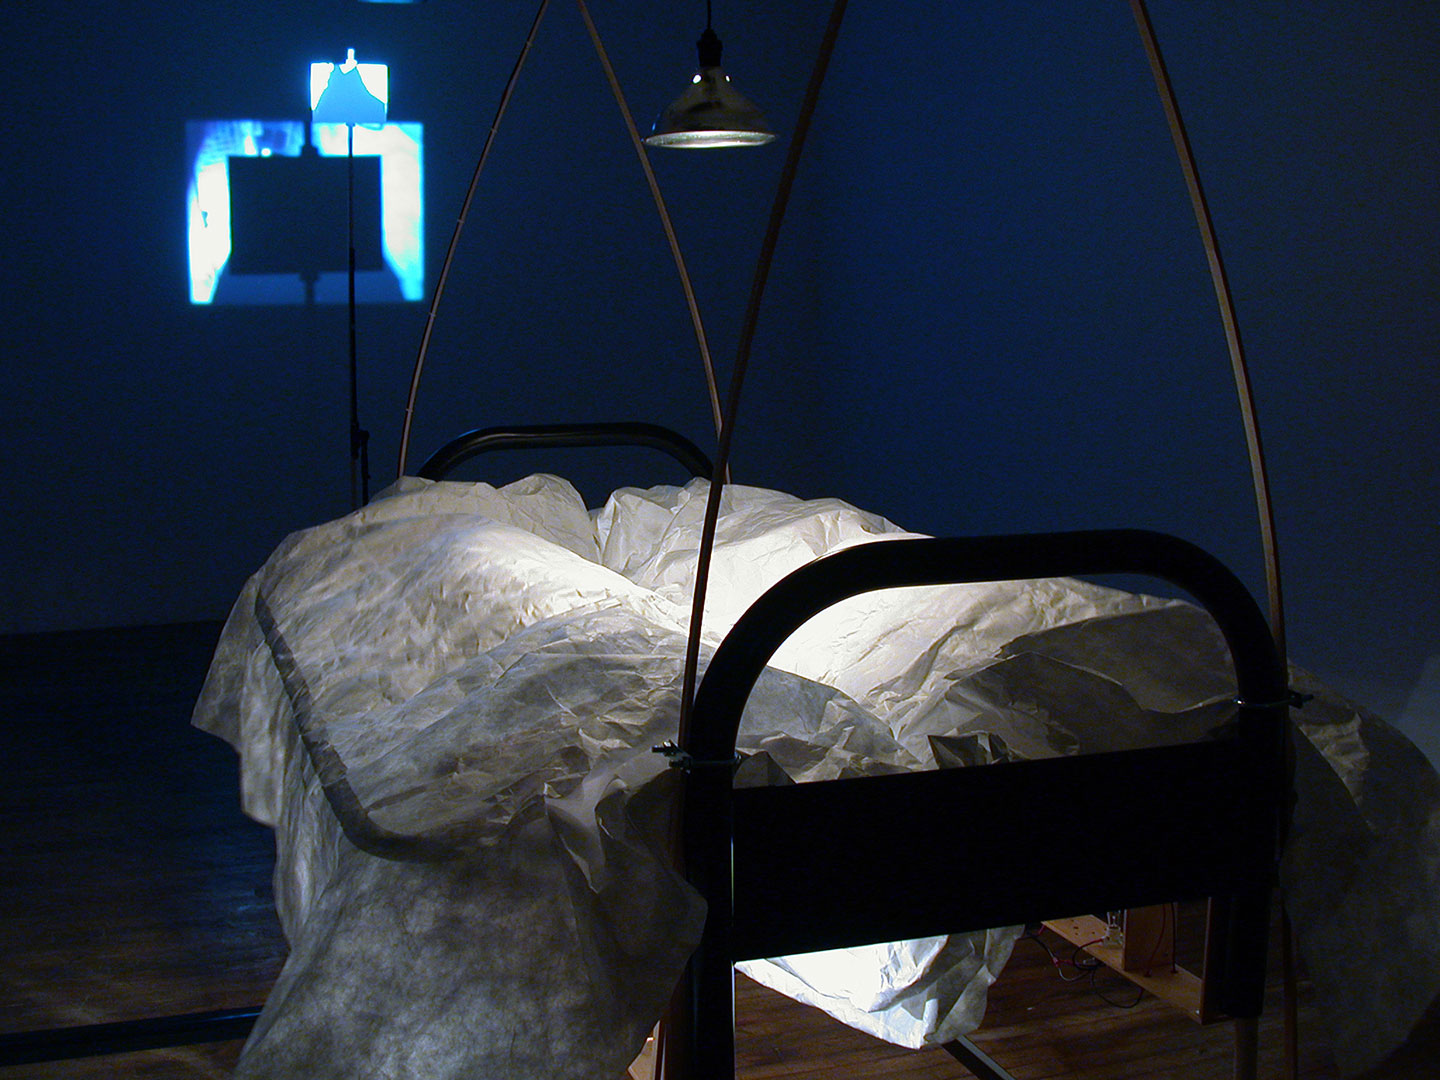 Diane Landry, The Magic Shield (detail), 2005, installation with automation, 2 futon-frame-beds, motors, selected objects, aluminum, wood, halogen lamp, MIDI controller, computer.